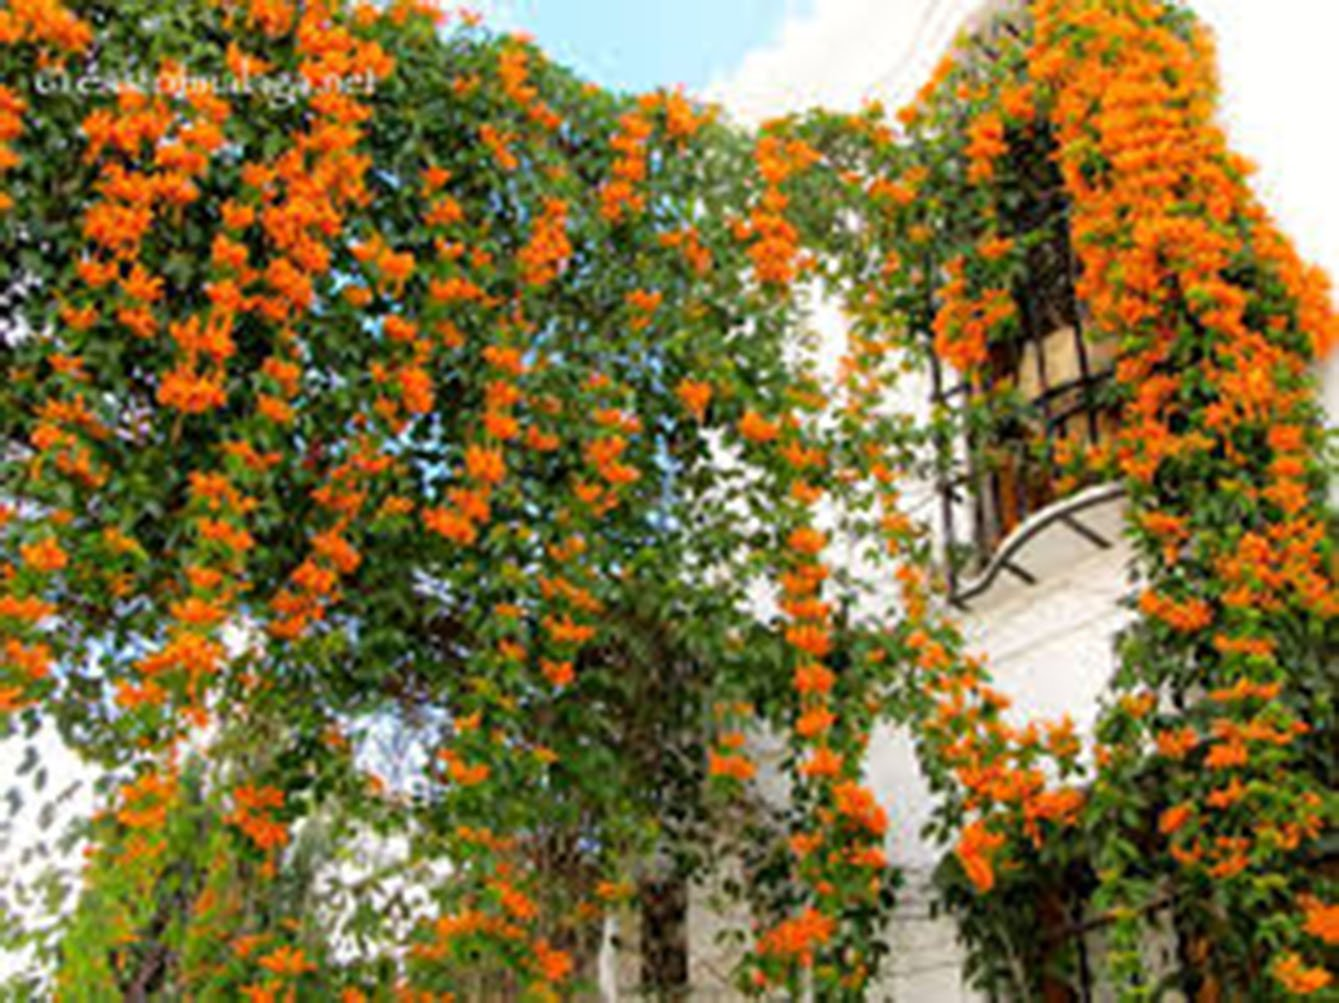 Trumpet Vine Creeper, Trumpet Flower, Campsis radican, (6) 16''-24'', Orange Flower, Orange Flowers, Vine, Vines, Hummingbird Vine, Hummingbird Flowers, Trumpet Vine Flower, Live Plants, Plant by Organic Heirloom Plants (Image #6)